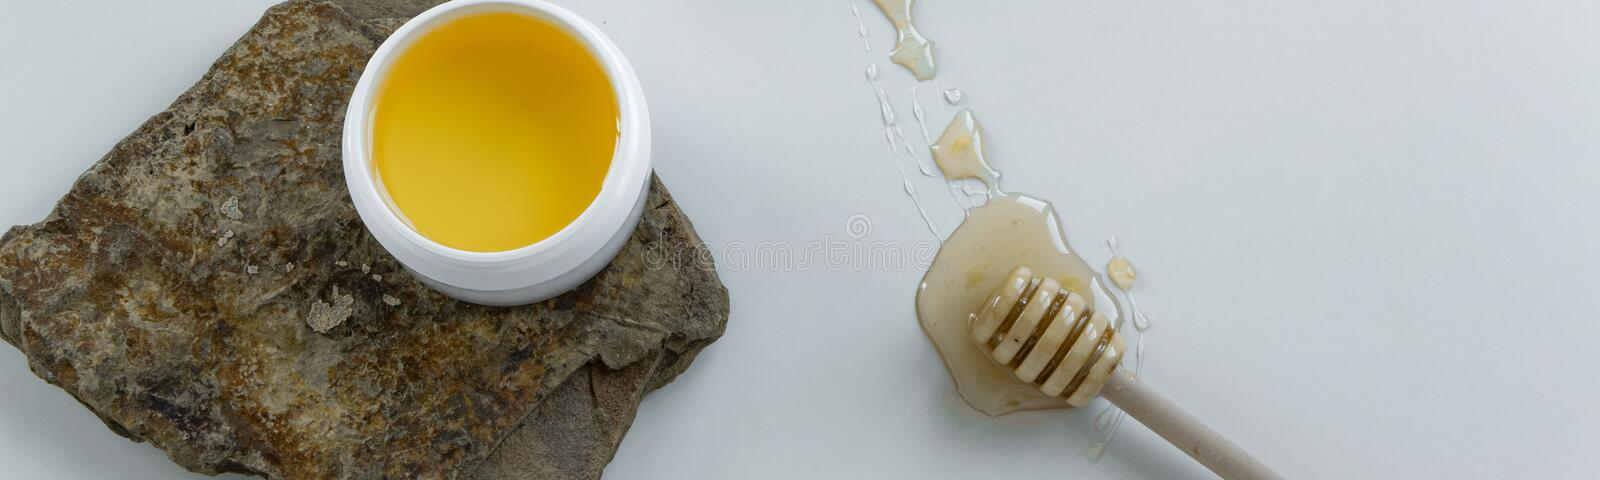 Skin care products with honey. Healthy organic remedy. Superfood for the skin royalty free stock photo